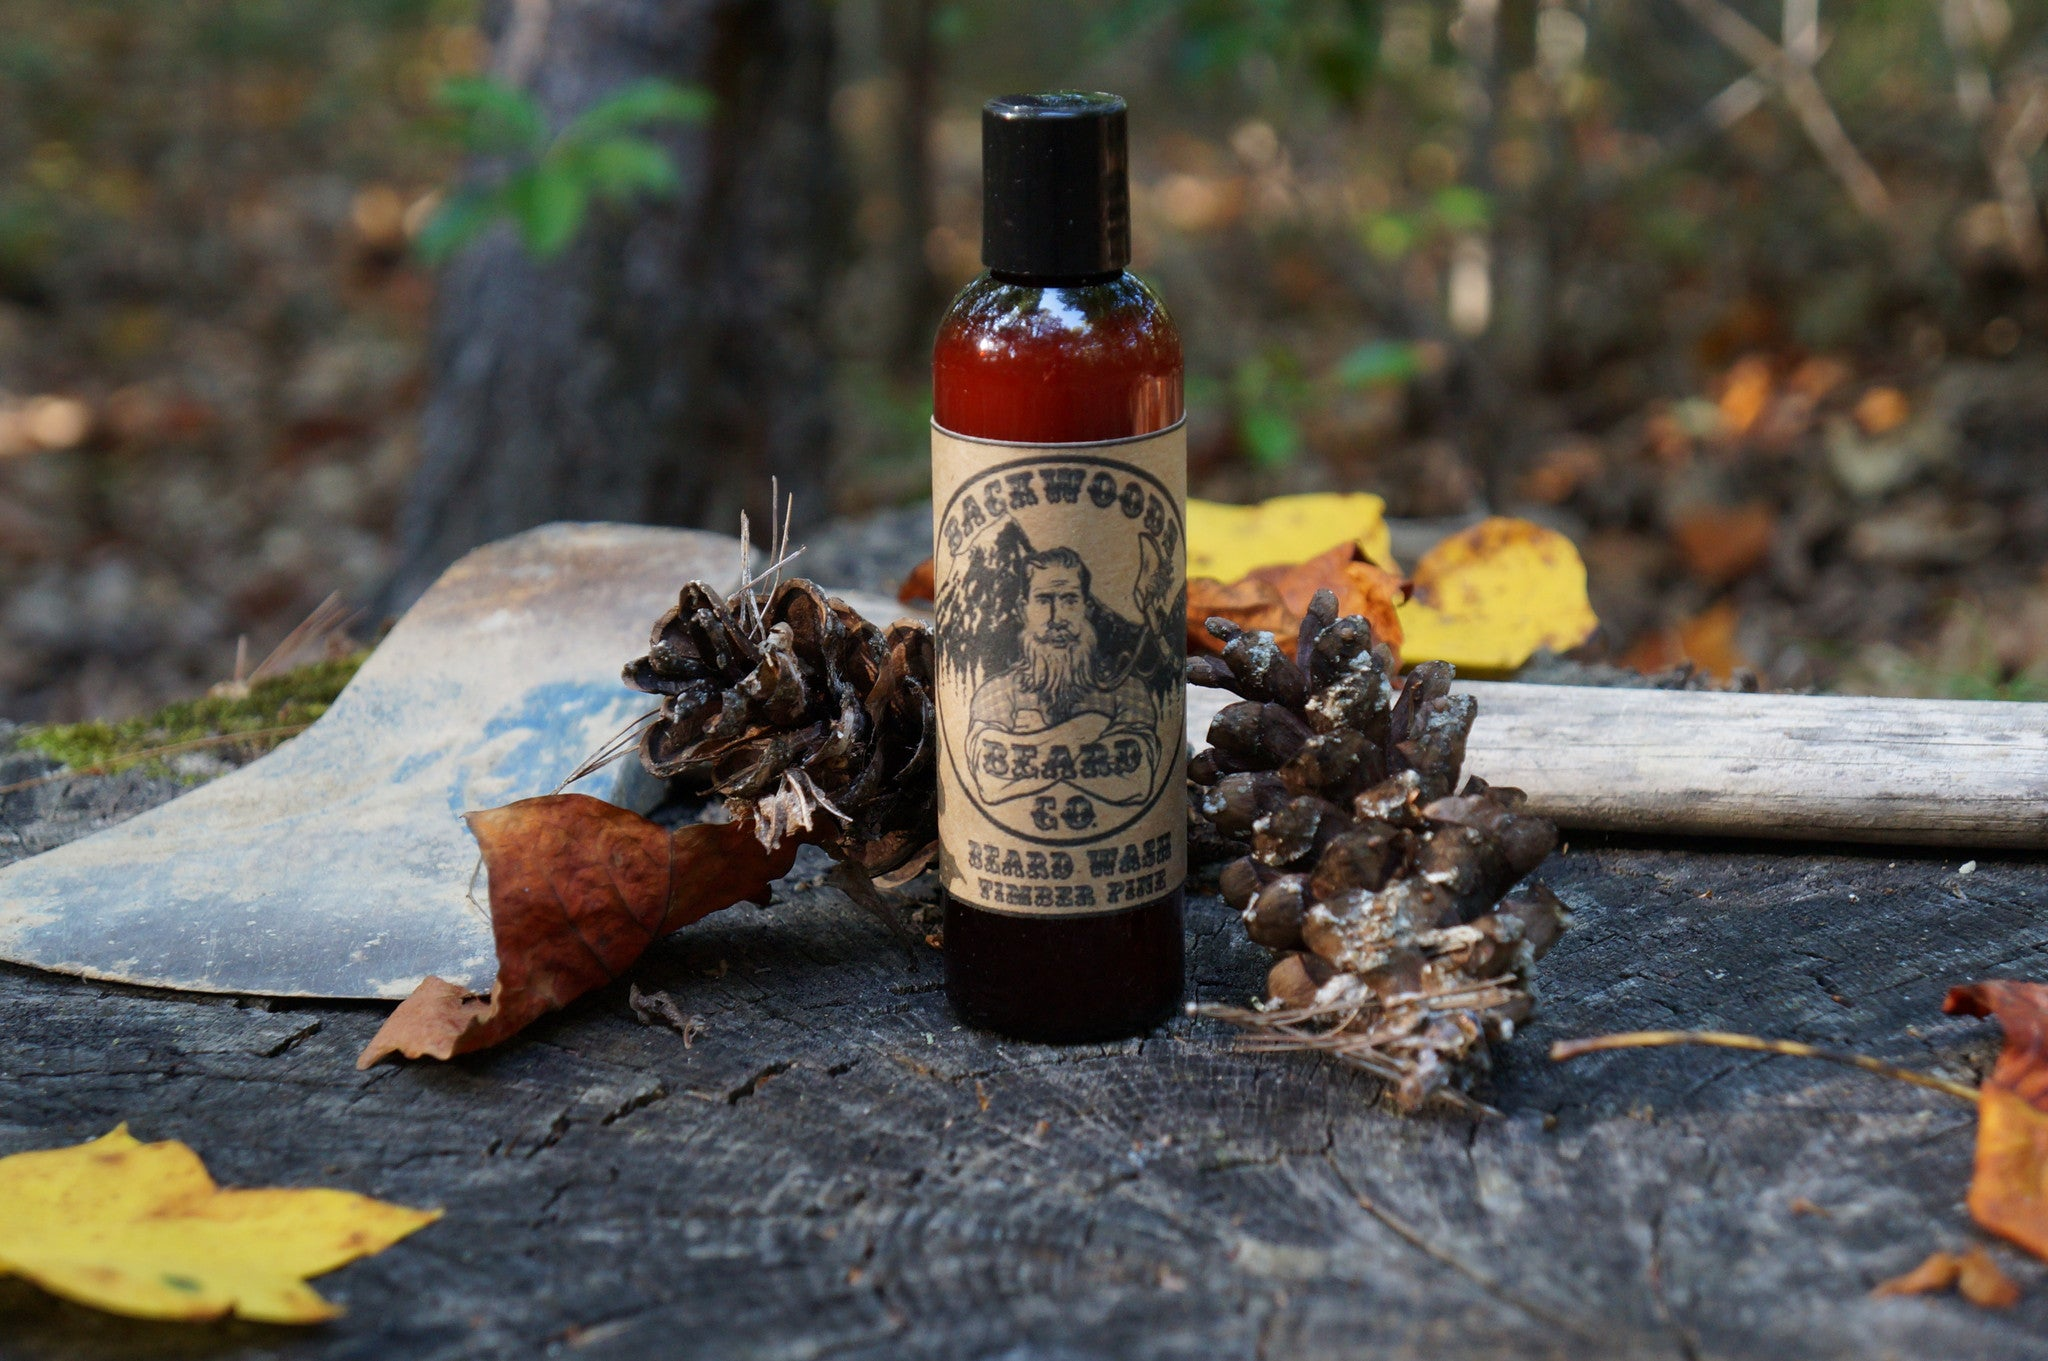 Timber Pine Beard Wash